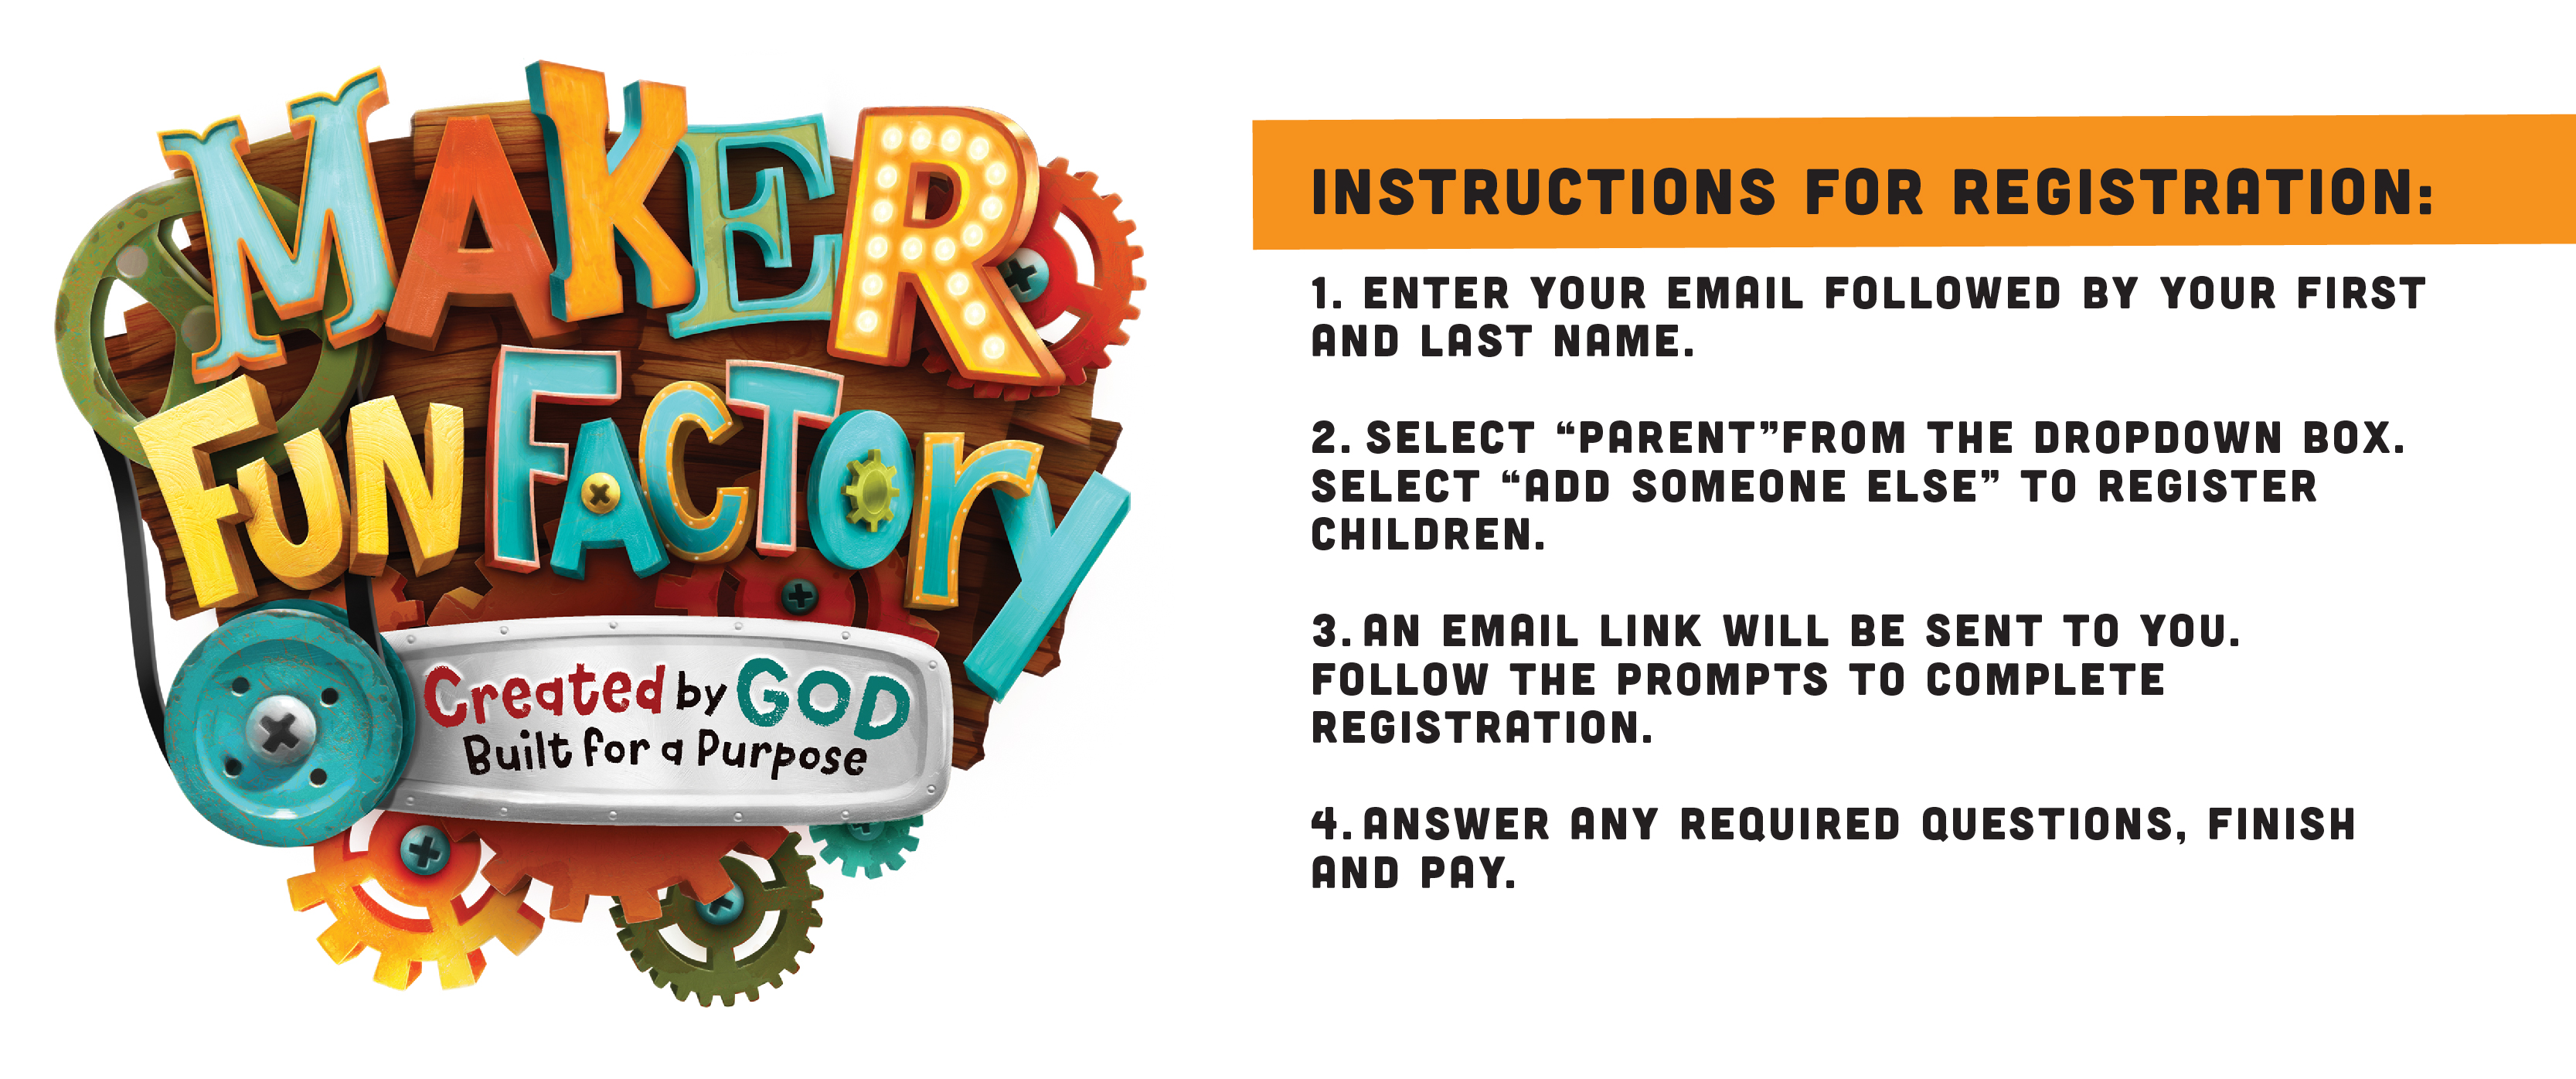 Vbs planning center instructions 01